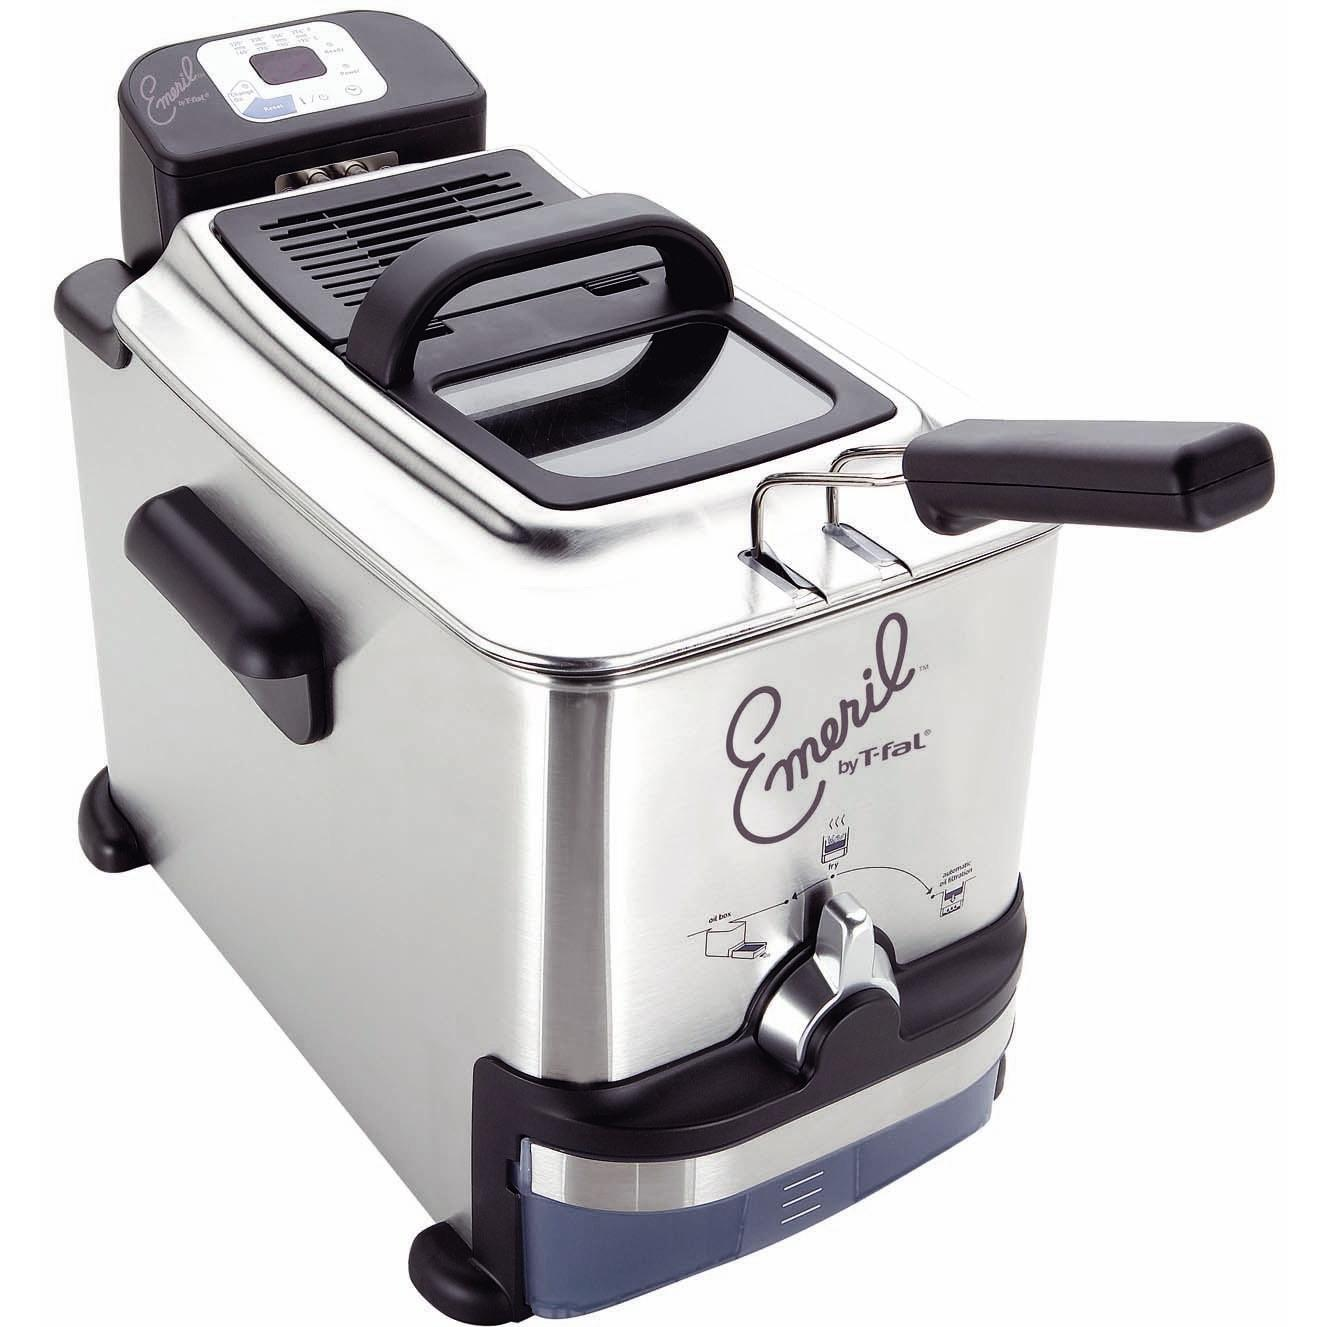 Emerilware By T-fal 3.3 Liter Stainless Steel Deep Fryer - FR7009001